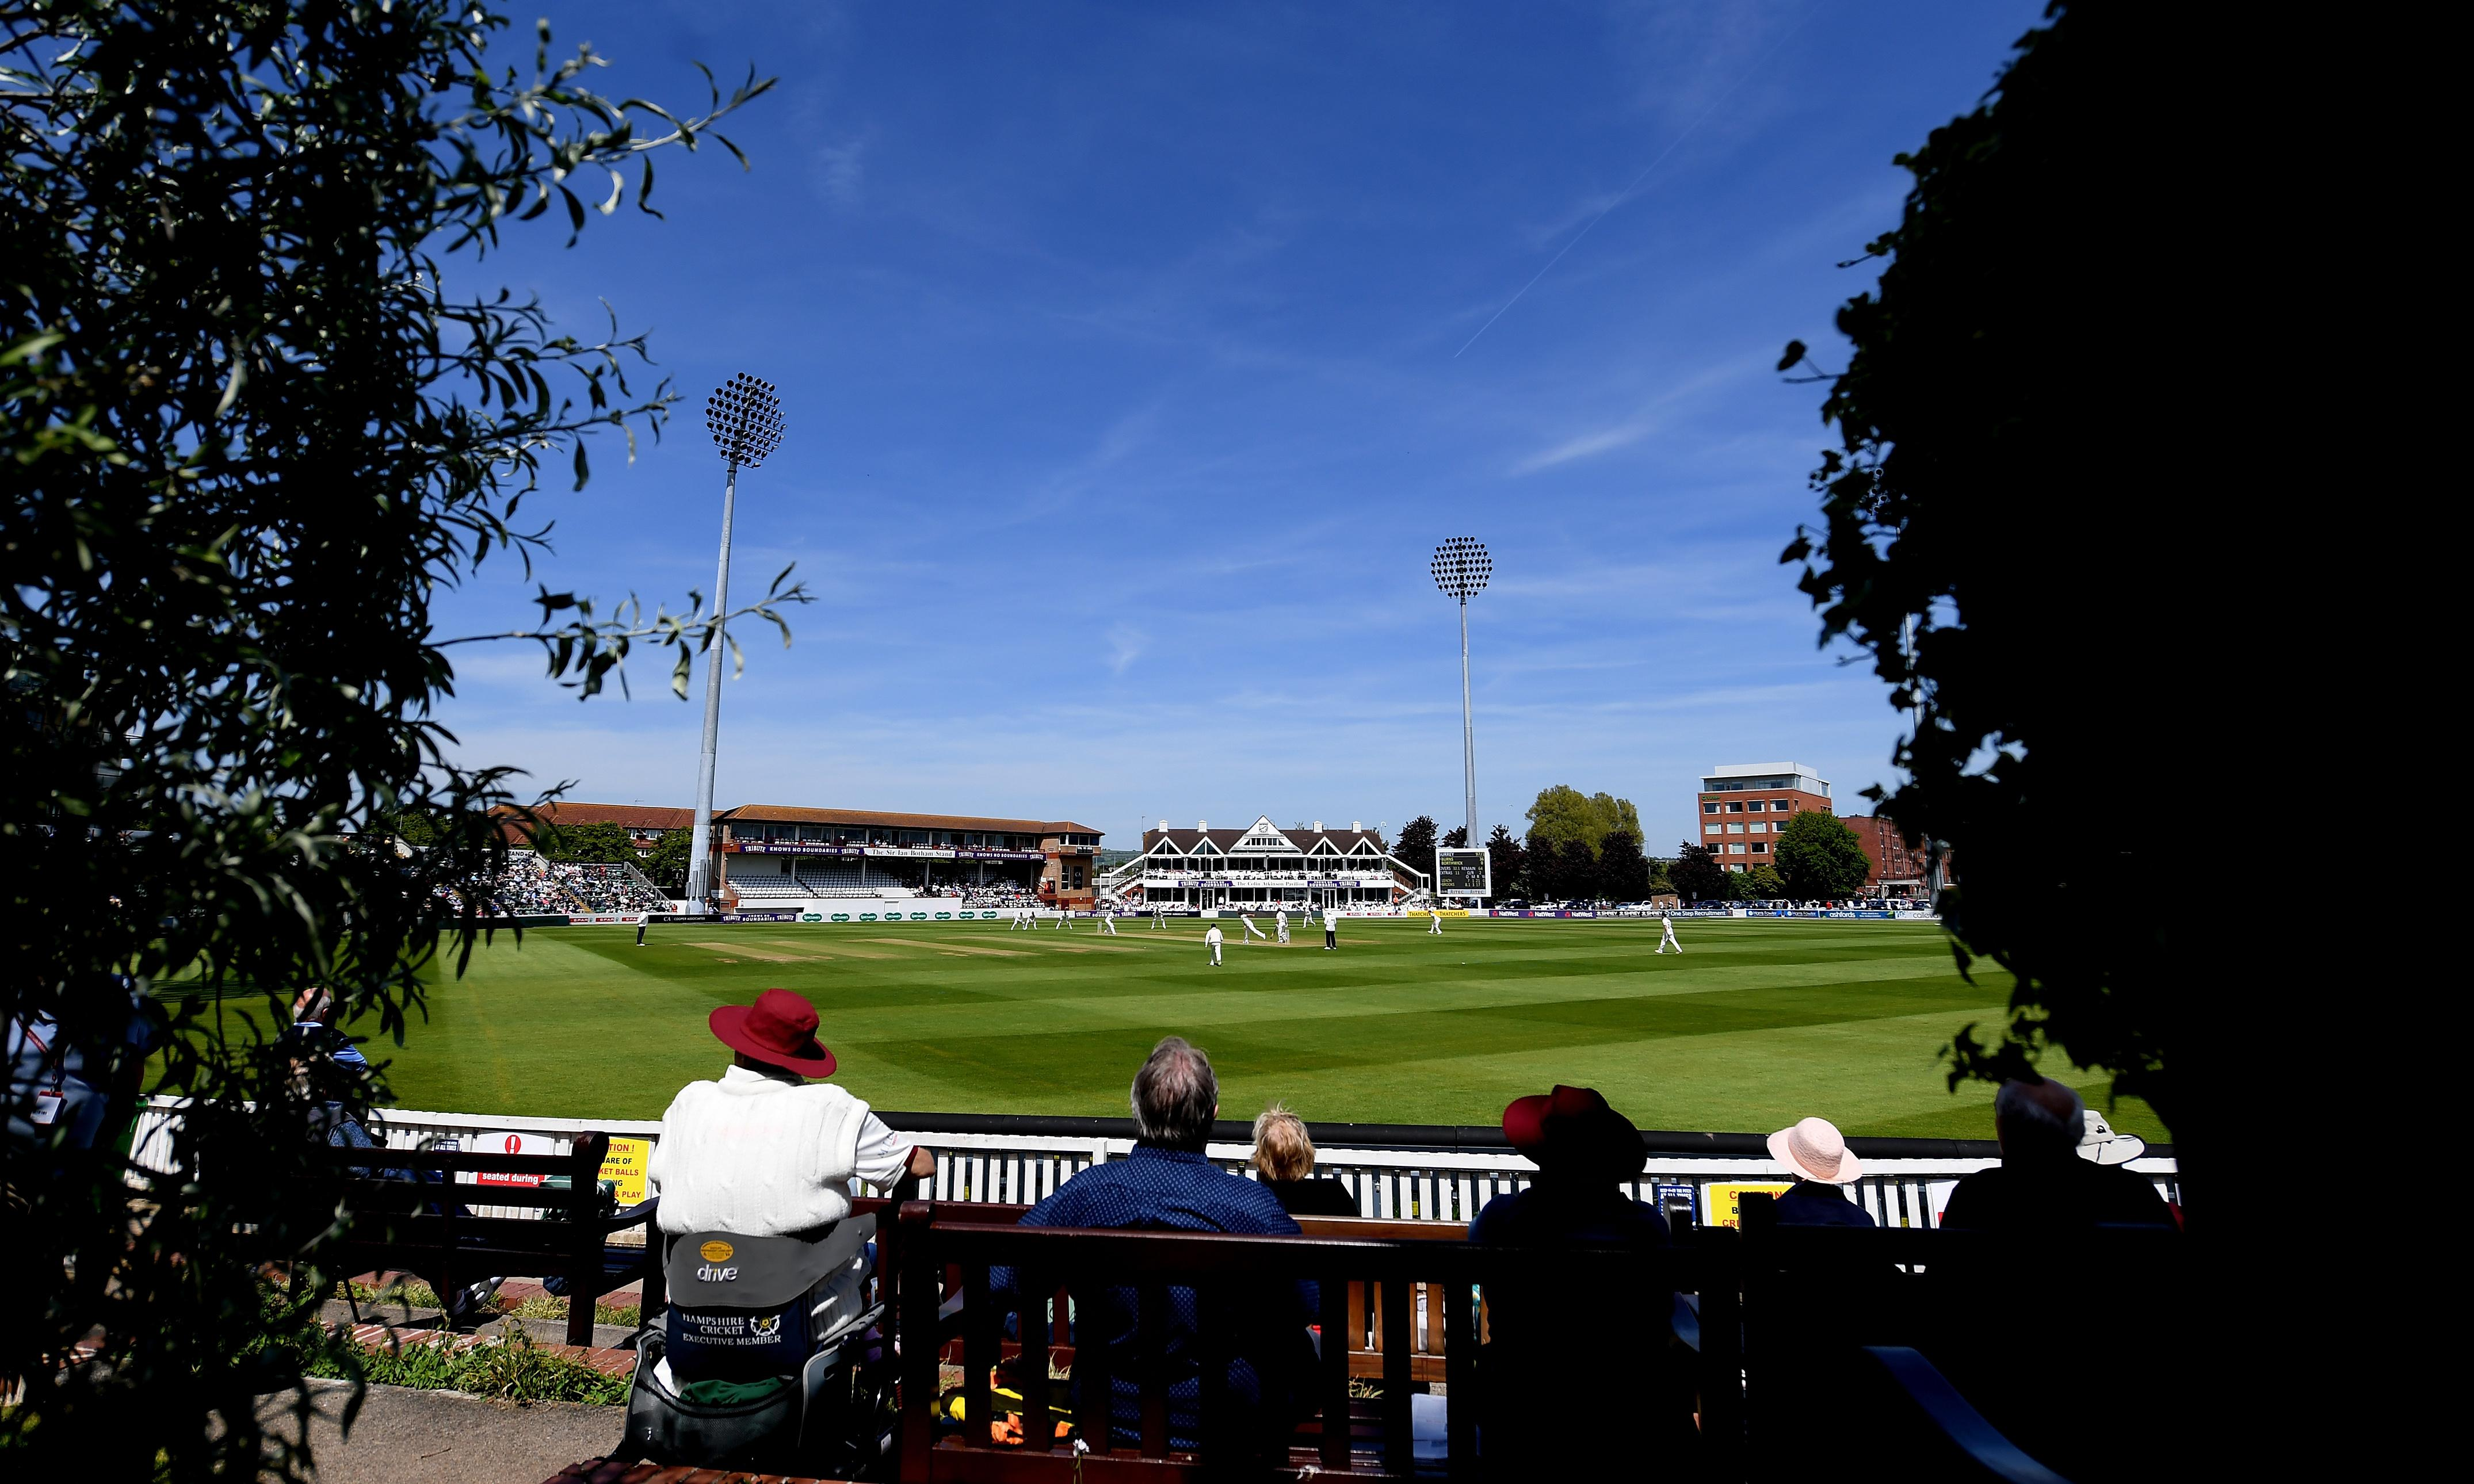 County cricket talking points: Somerset dare to dream of first title